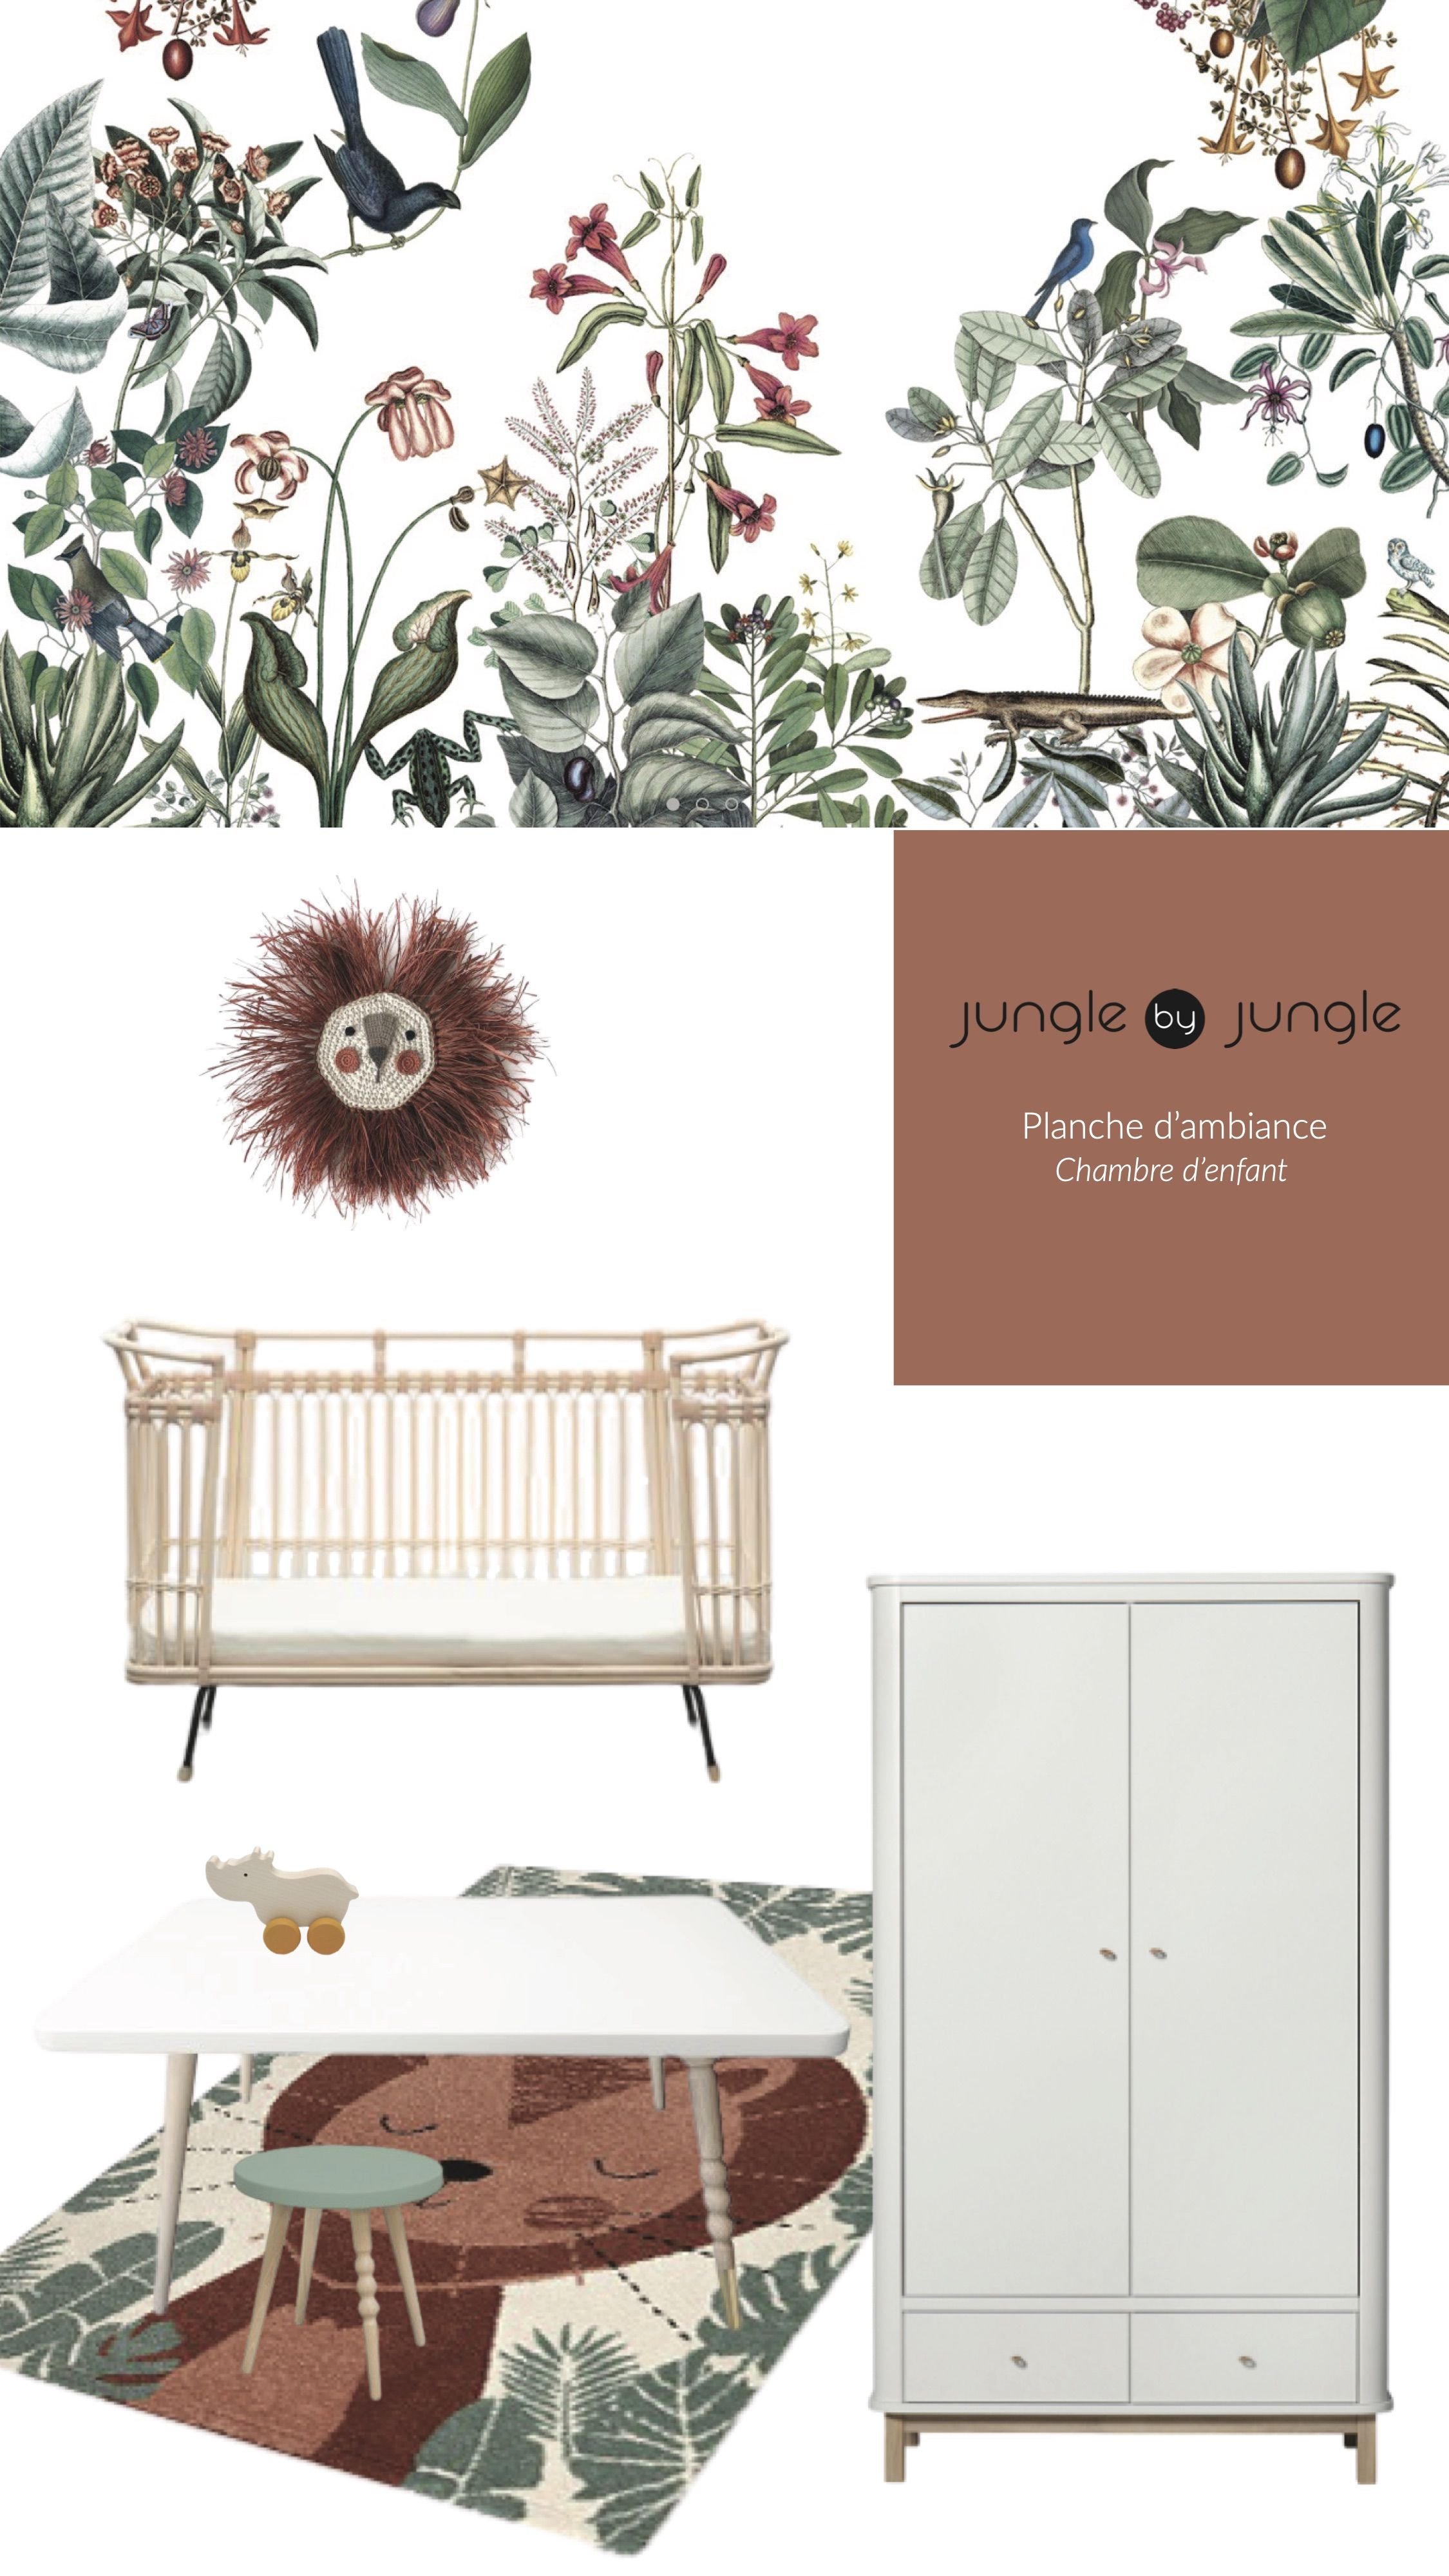 Décorez une jolie chambre de bébé aux tonalités chaudes et colorées ! Découvrez toutes nos idées. #planchetendance #plancheambiance #chambrebebe #kidsroom #babyroom #colours #décoration #wallpaper #junglebyjungle #bienfaitparis #bermbach_handcrafted #oliverfurniture